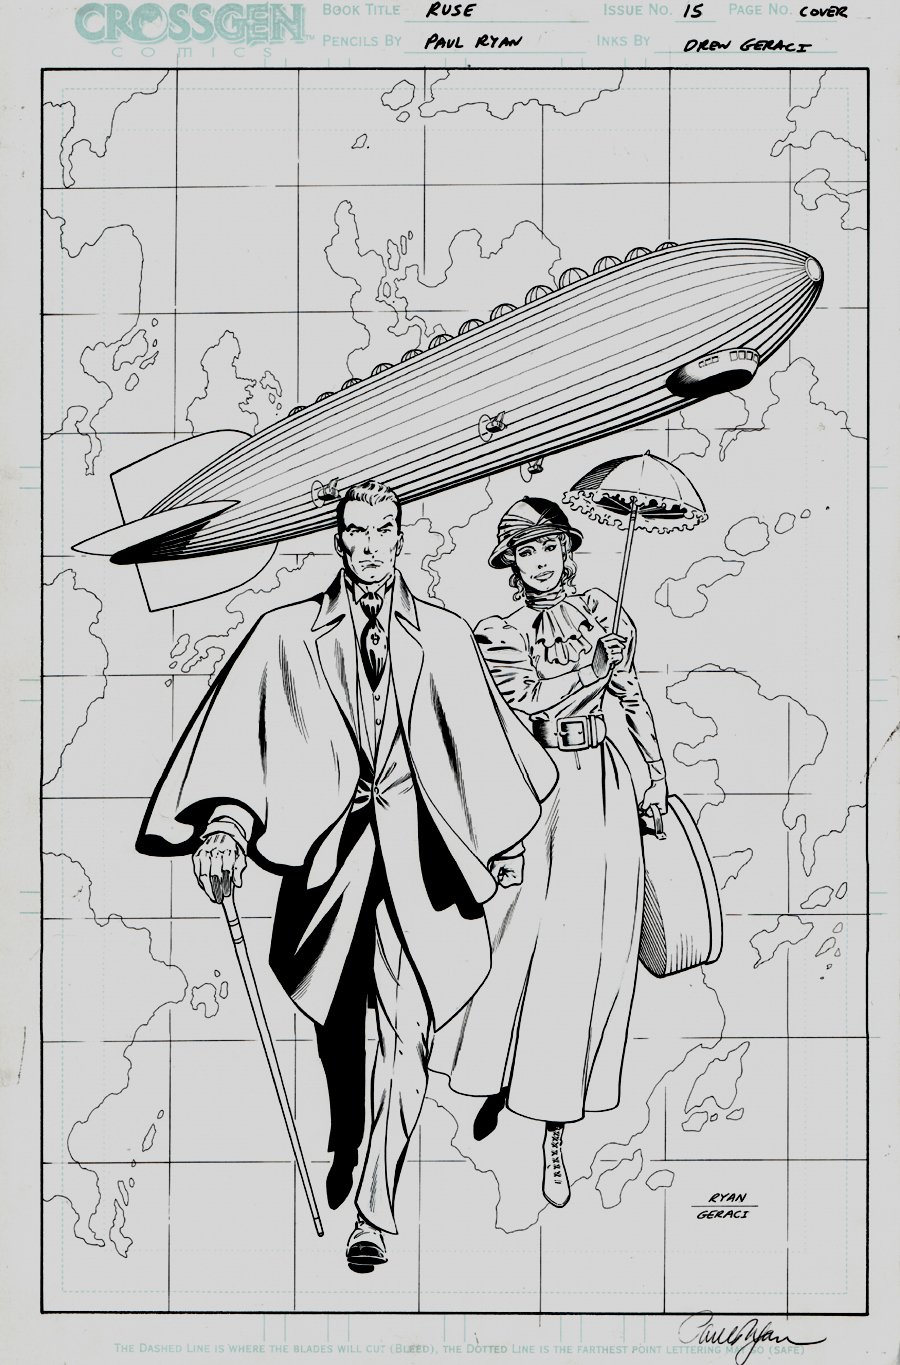 Ruse #15 Cover (2002)